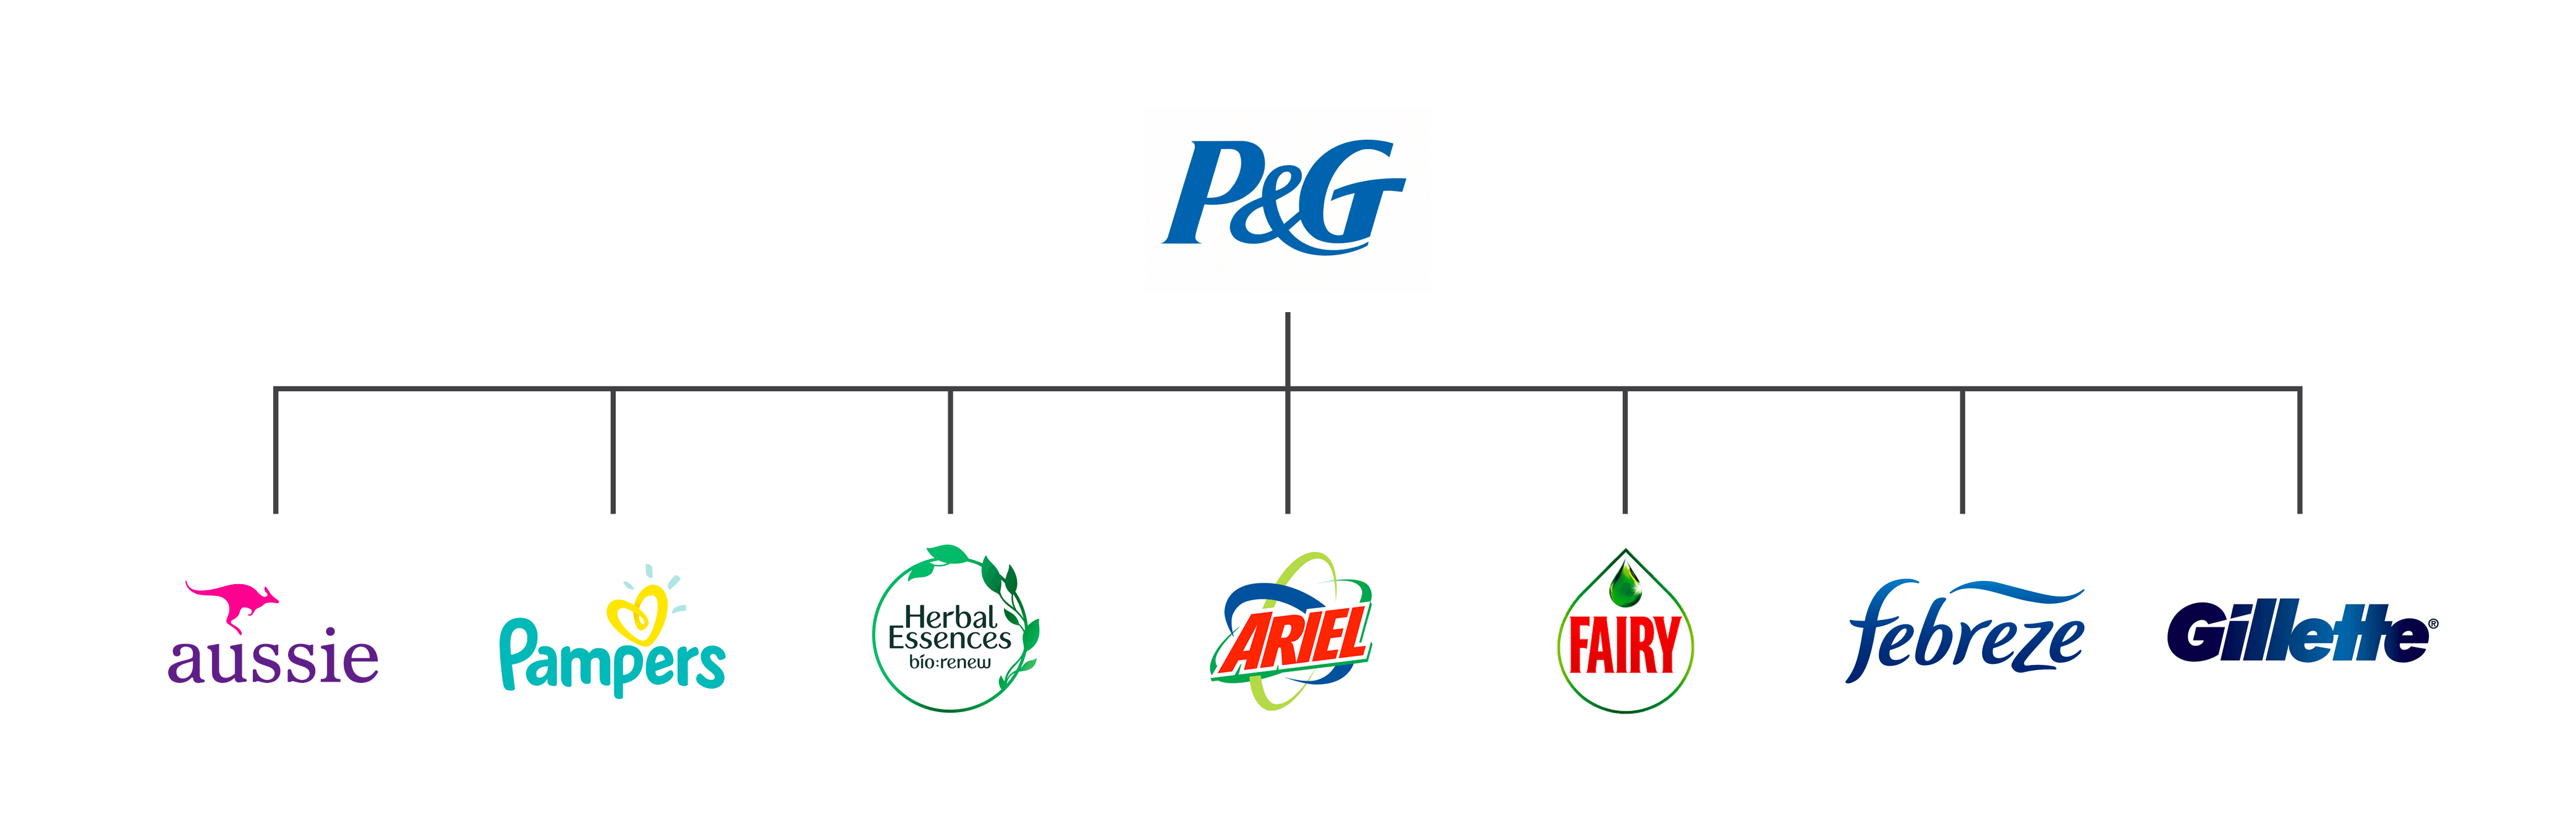 A picture showing the brands owned by Procter & Gamble